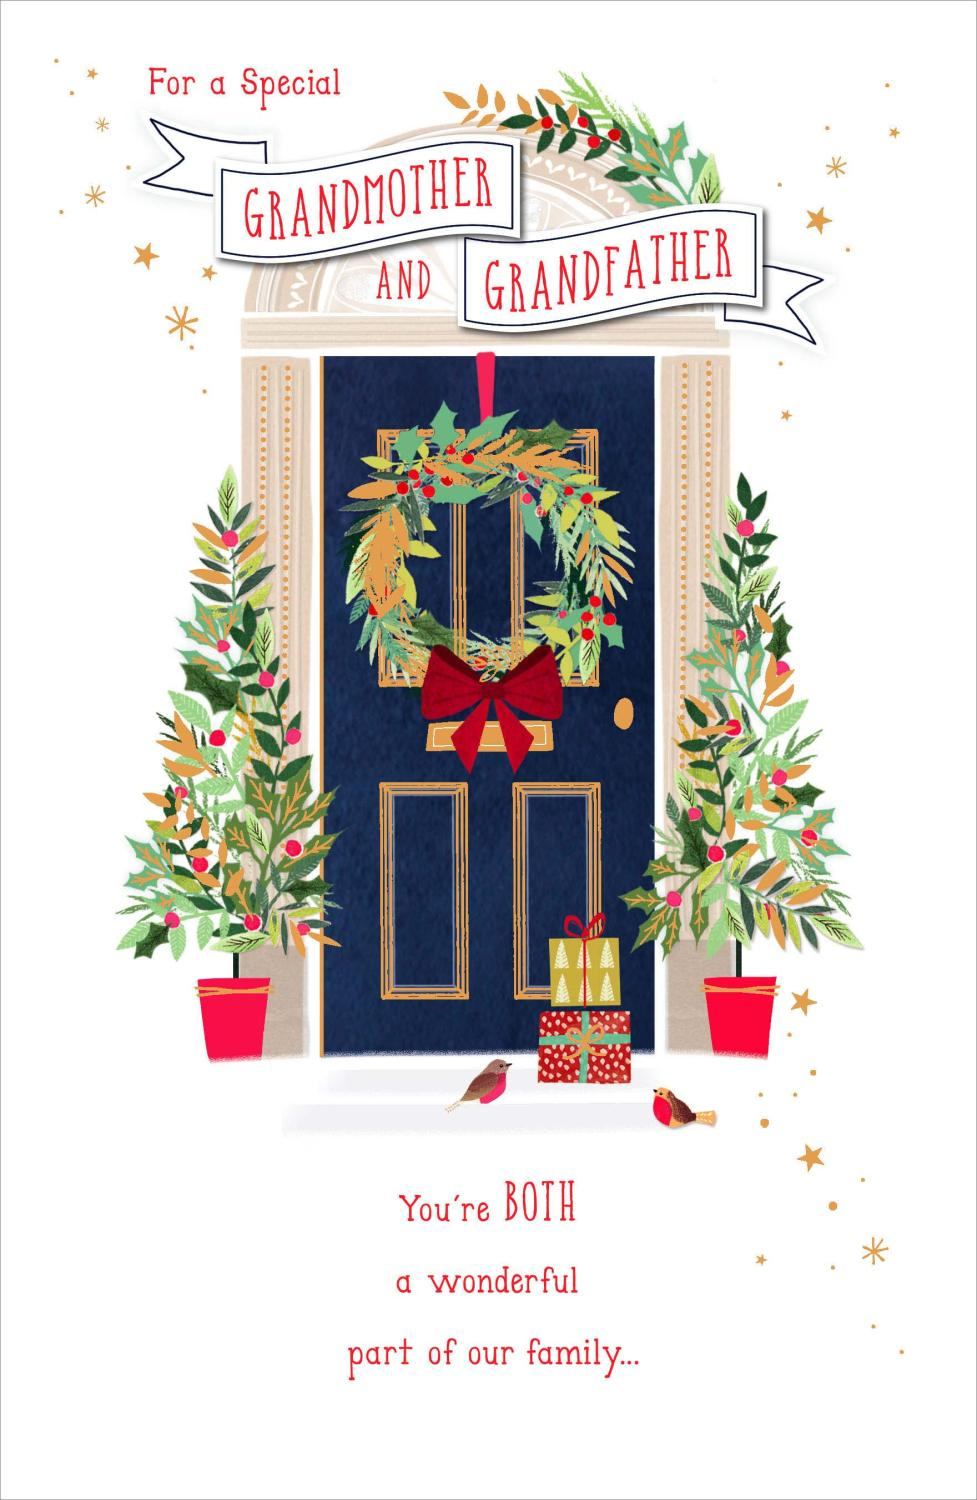 Christmas Card Grandparents Choose Your Own Multi Caption Door With Christmas Wreath Highworth Emporium